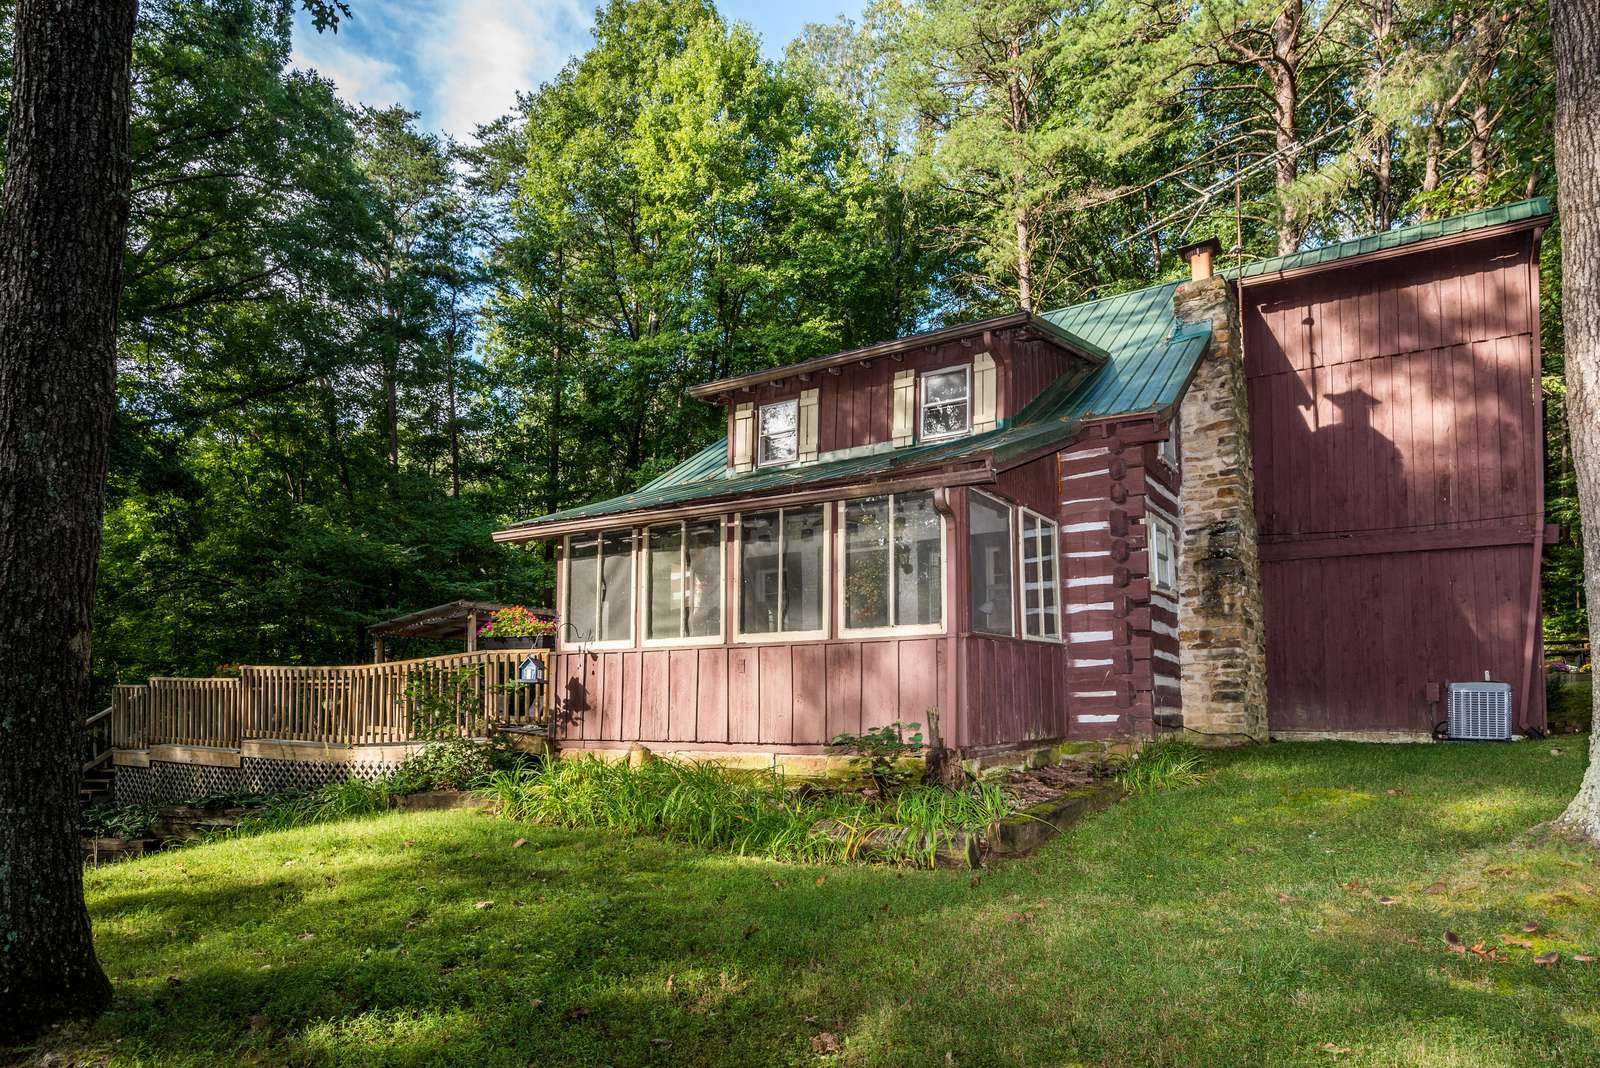 Atop Pine Hill Log Cabin - property